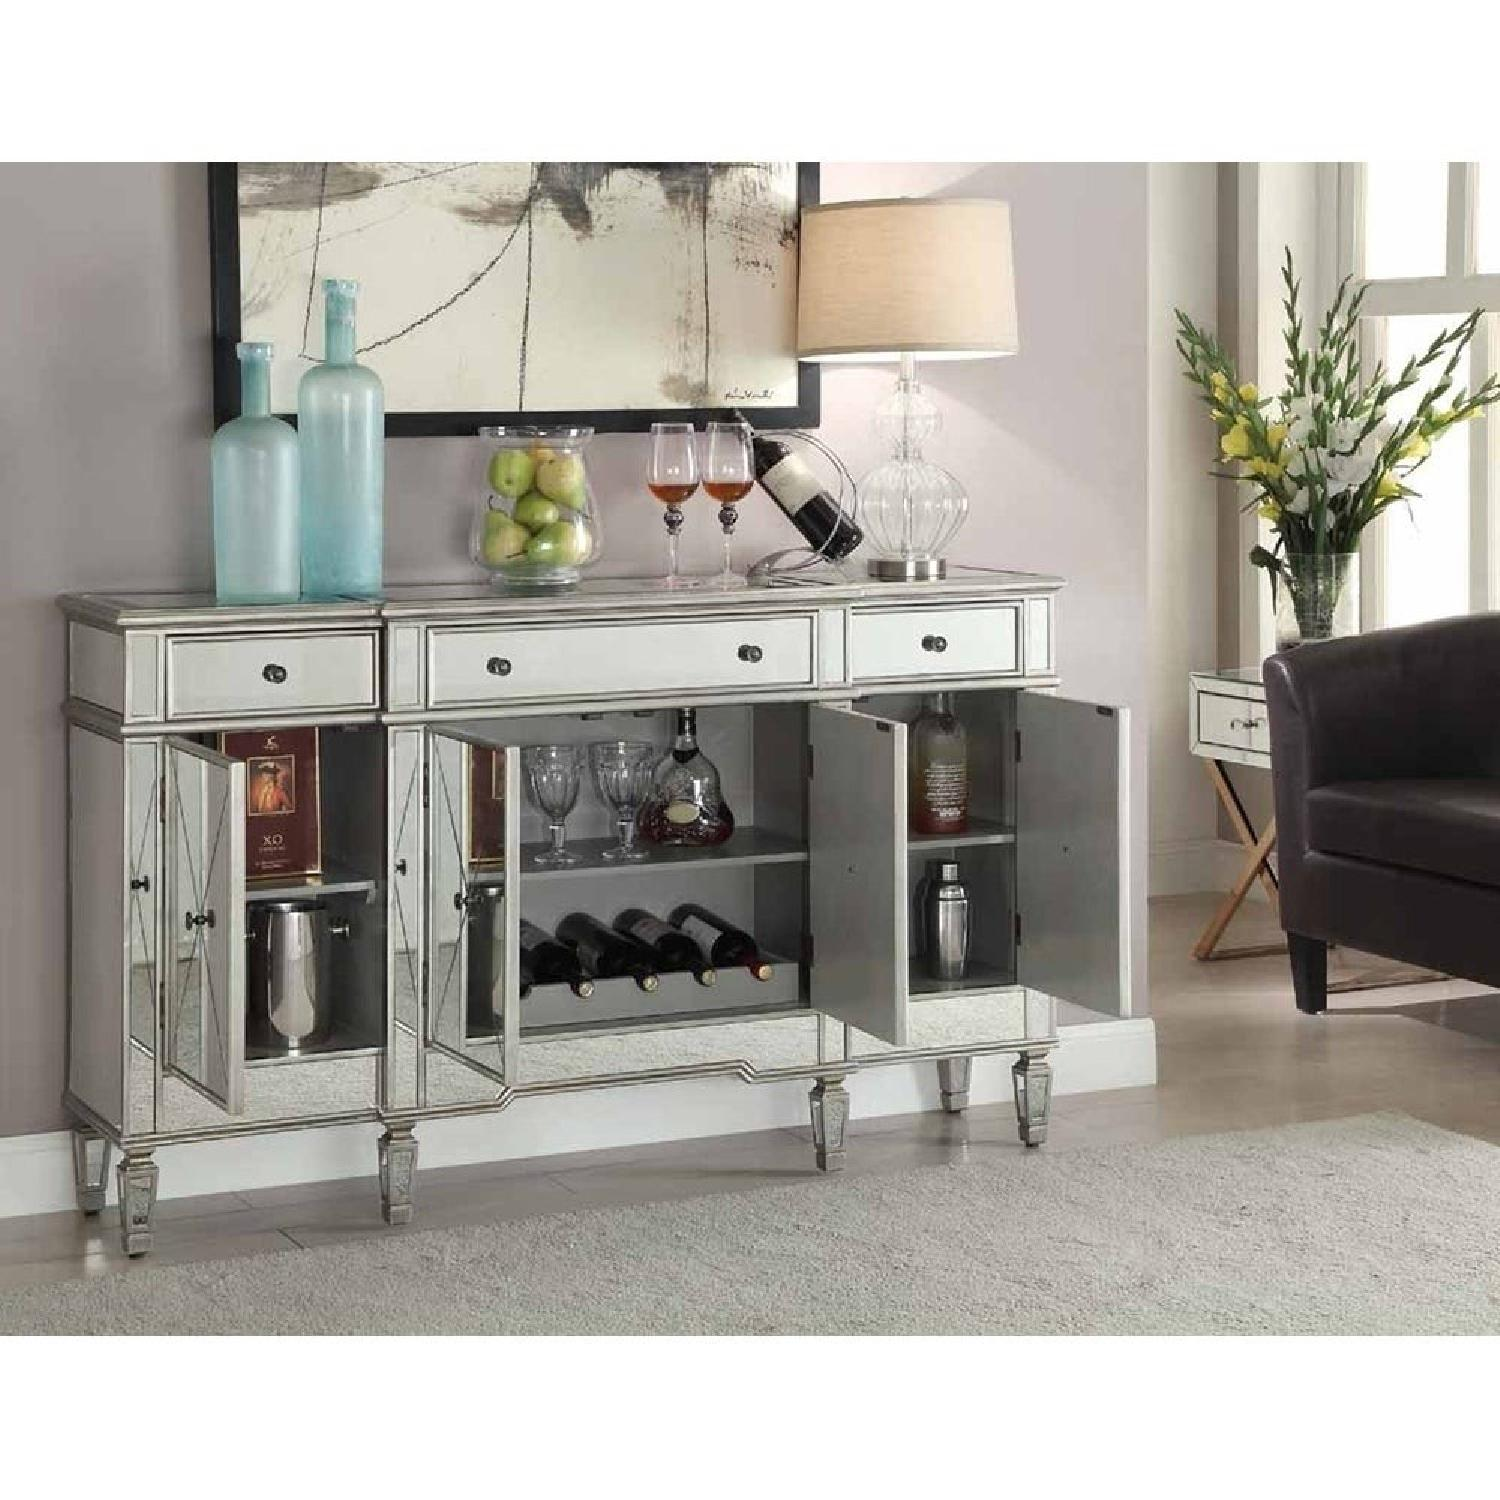 Lamonde Silver Mirrored Cabinet w/ Removable Wine Rack - image-5